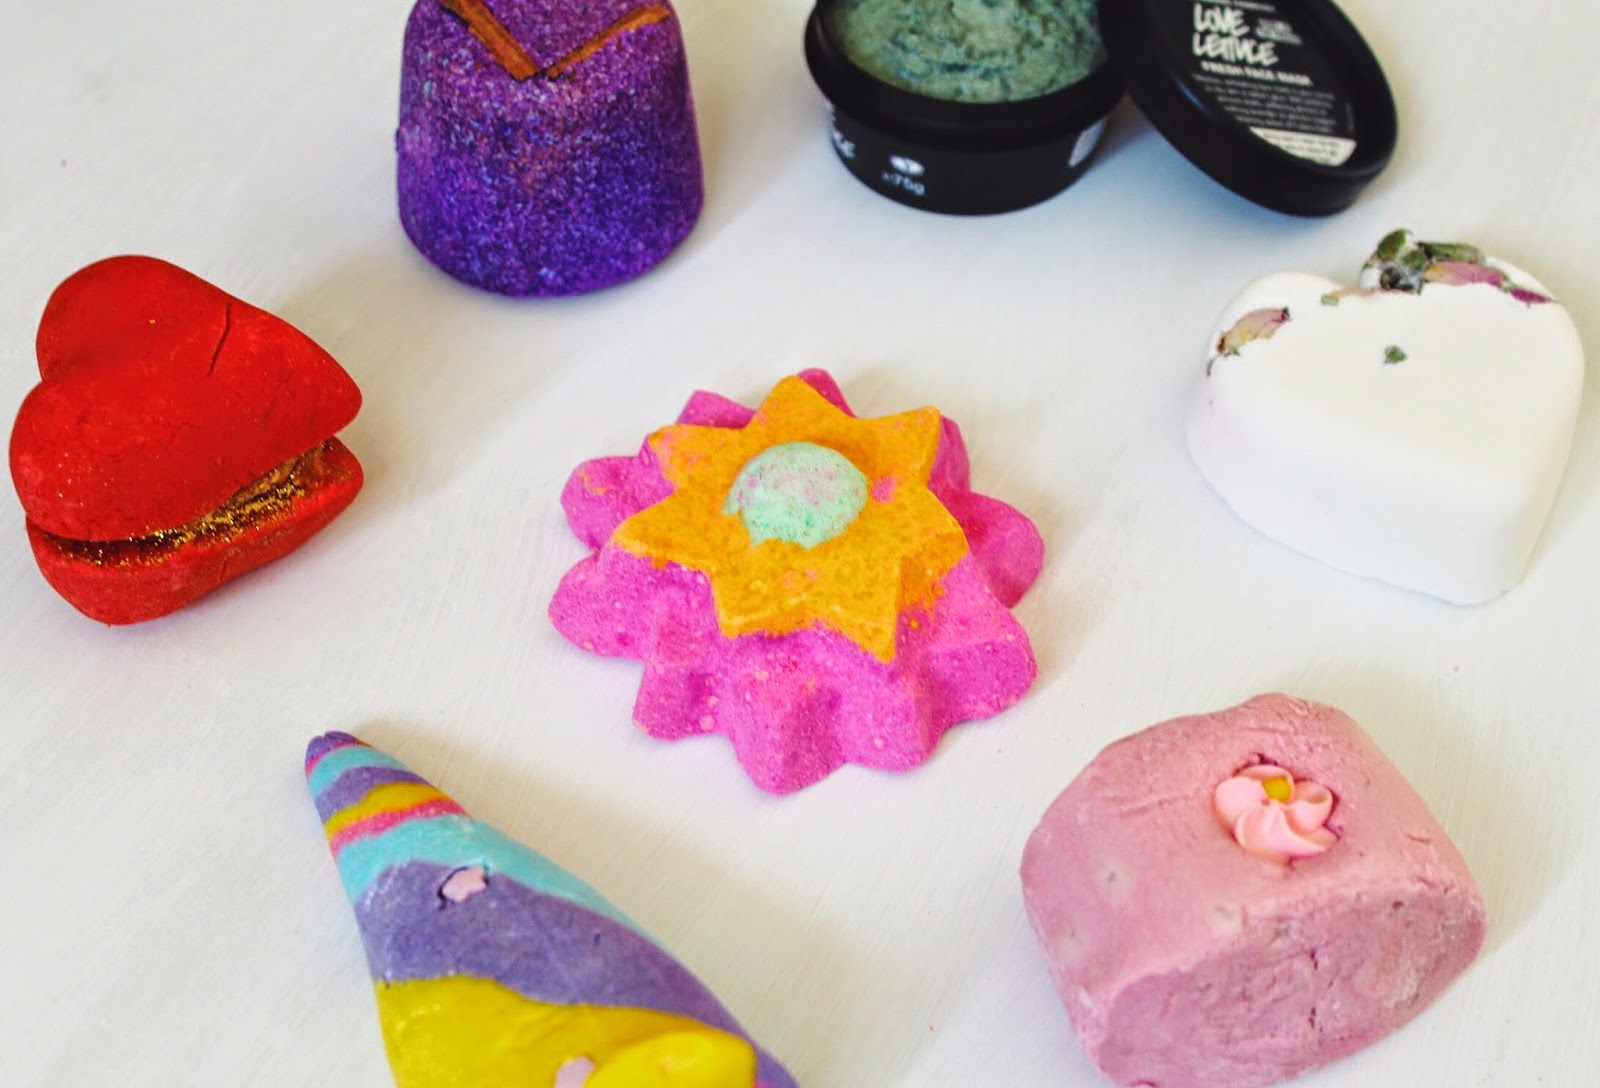 lushhaul, lushhauljanuary2015, halcyonvelvet, fbloggers, unicornhorn, lovelettuce, lushreview, bbloggers, beauty, beautybloggers, asseenonme, phoenixrising, floatingflower, creamycandybath, tistytosty, heartthrob,